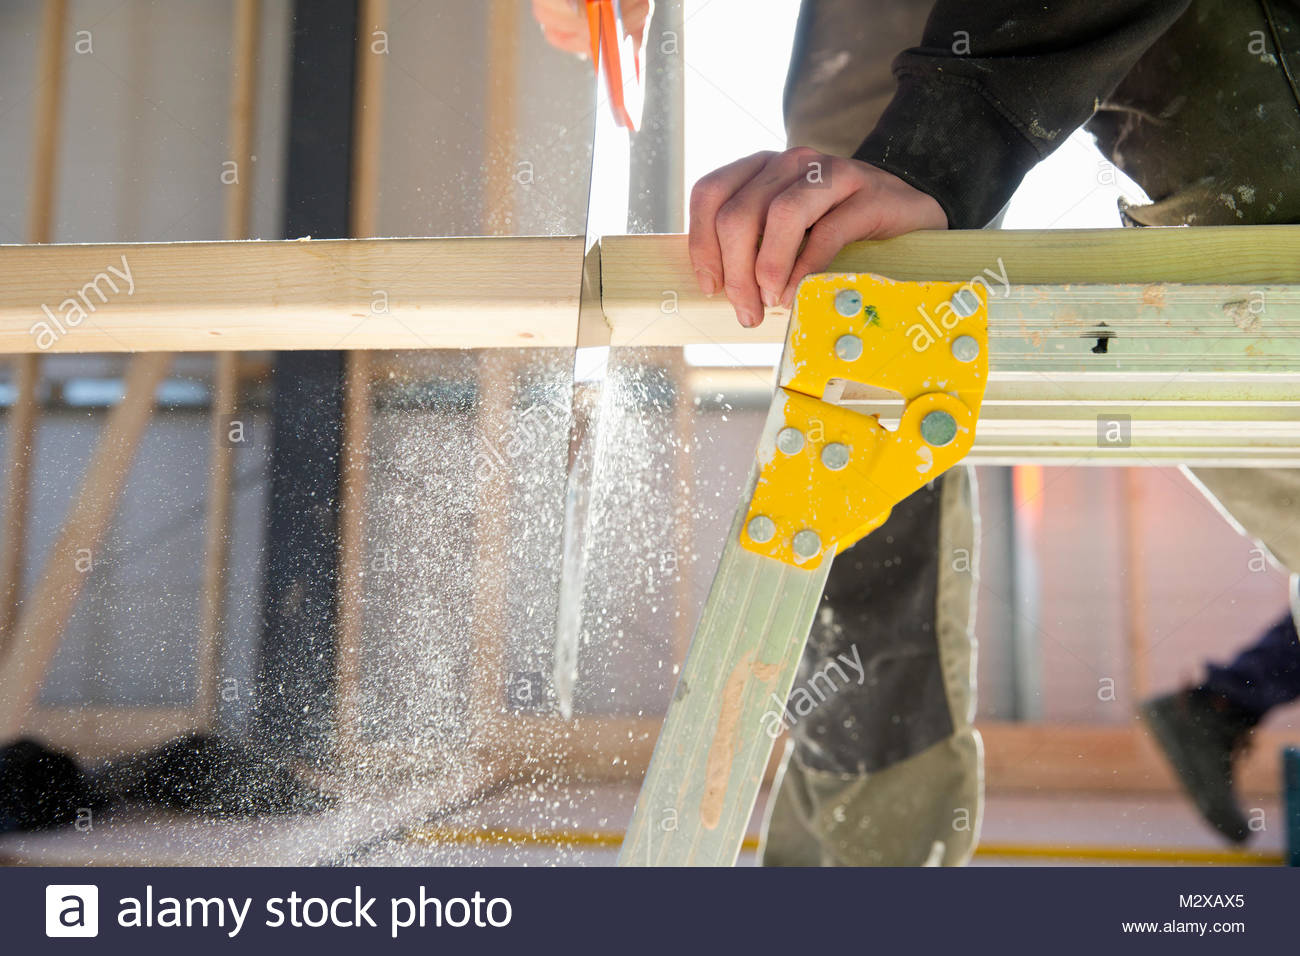 Close-up of carpenter sawing piece of wood on construction site interior - Stock Image